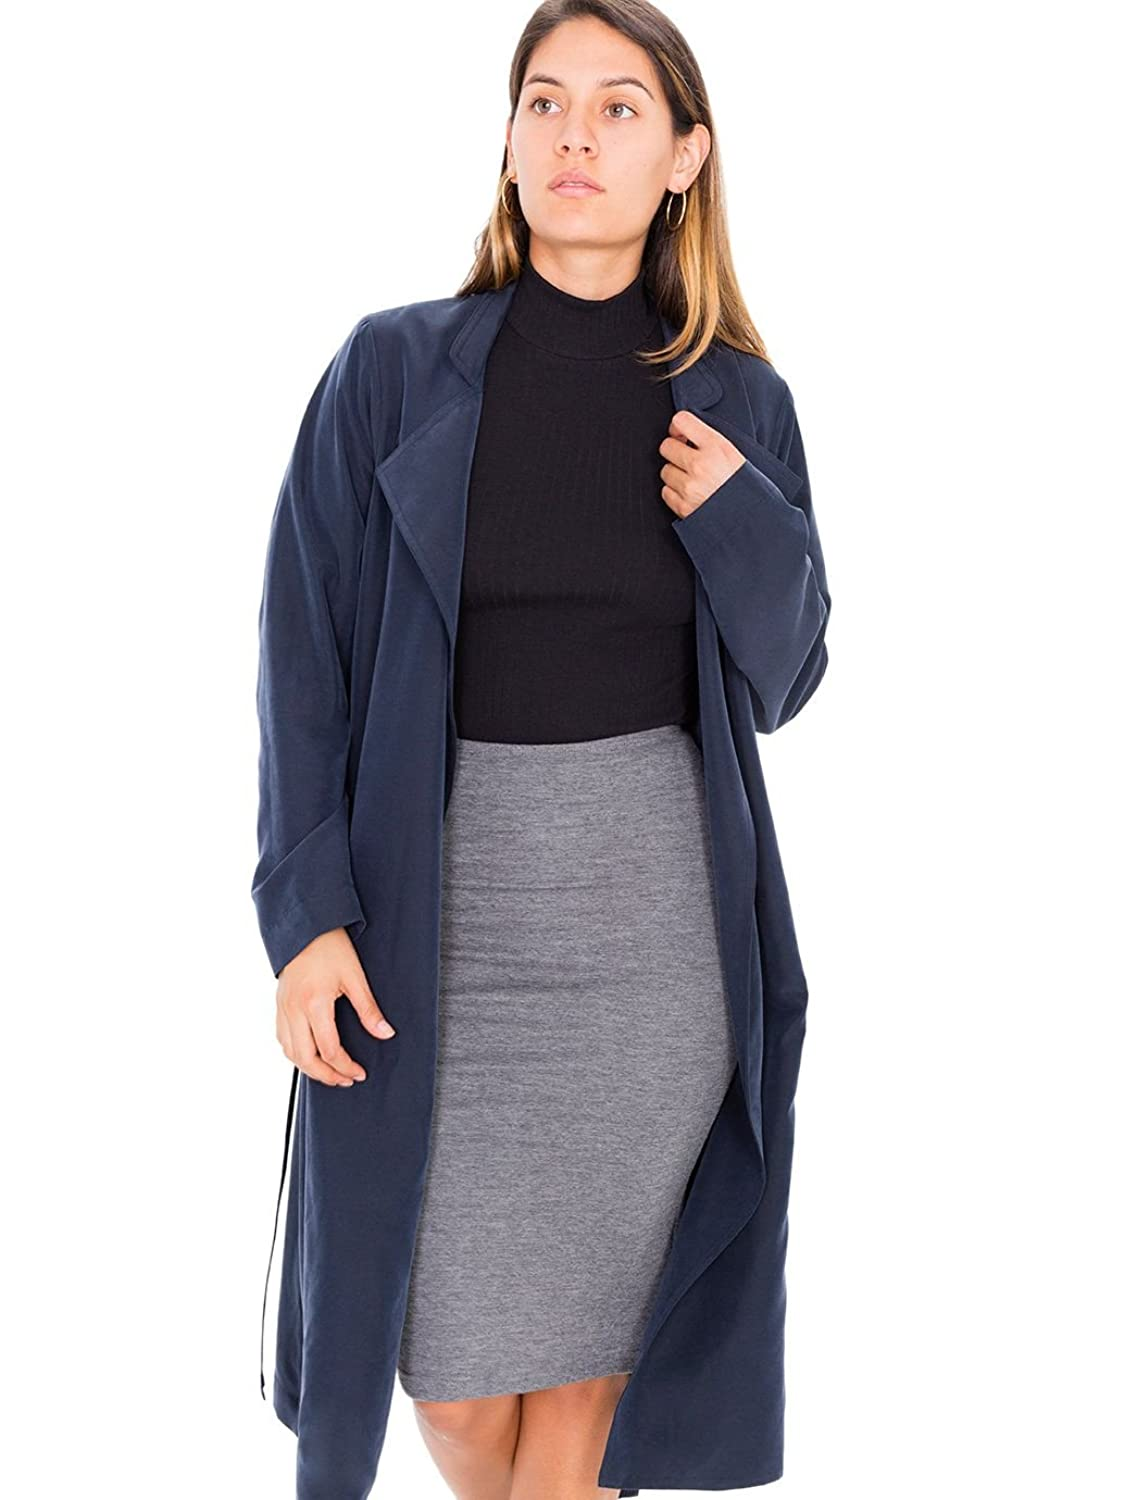 American Apparel Lightweight Dylan Trench - Naval / M/L